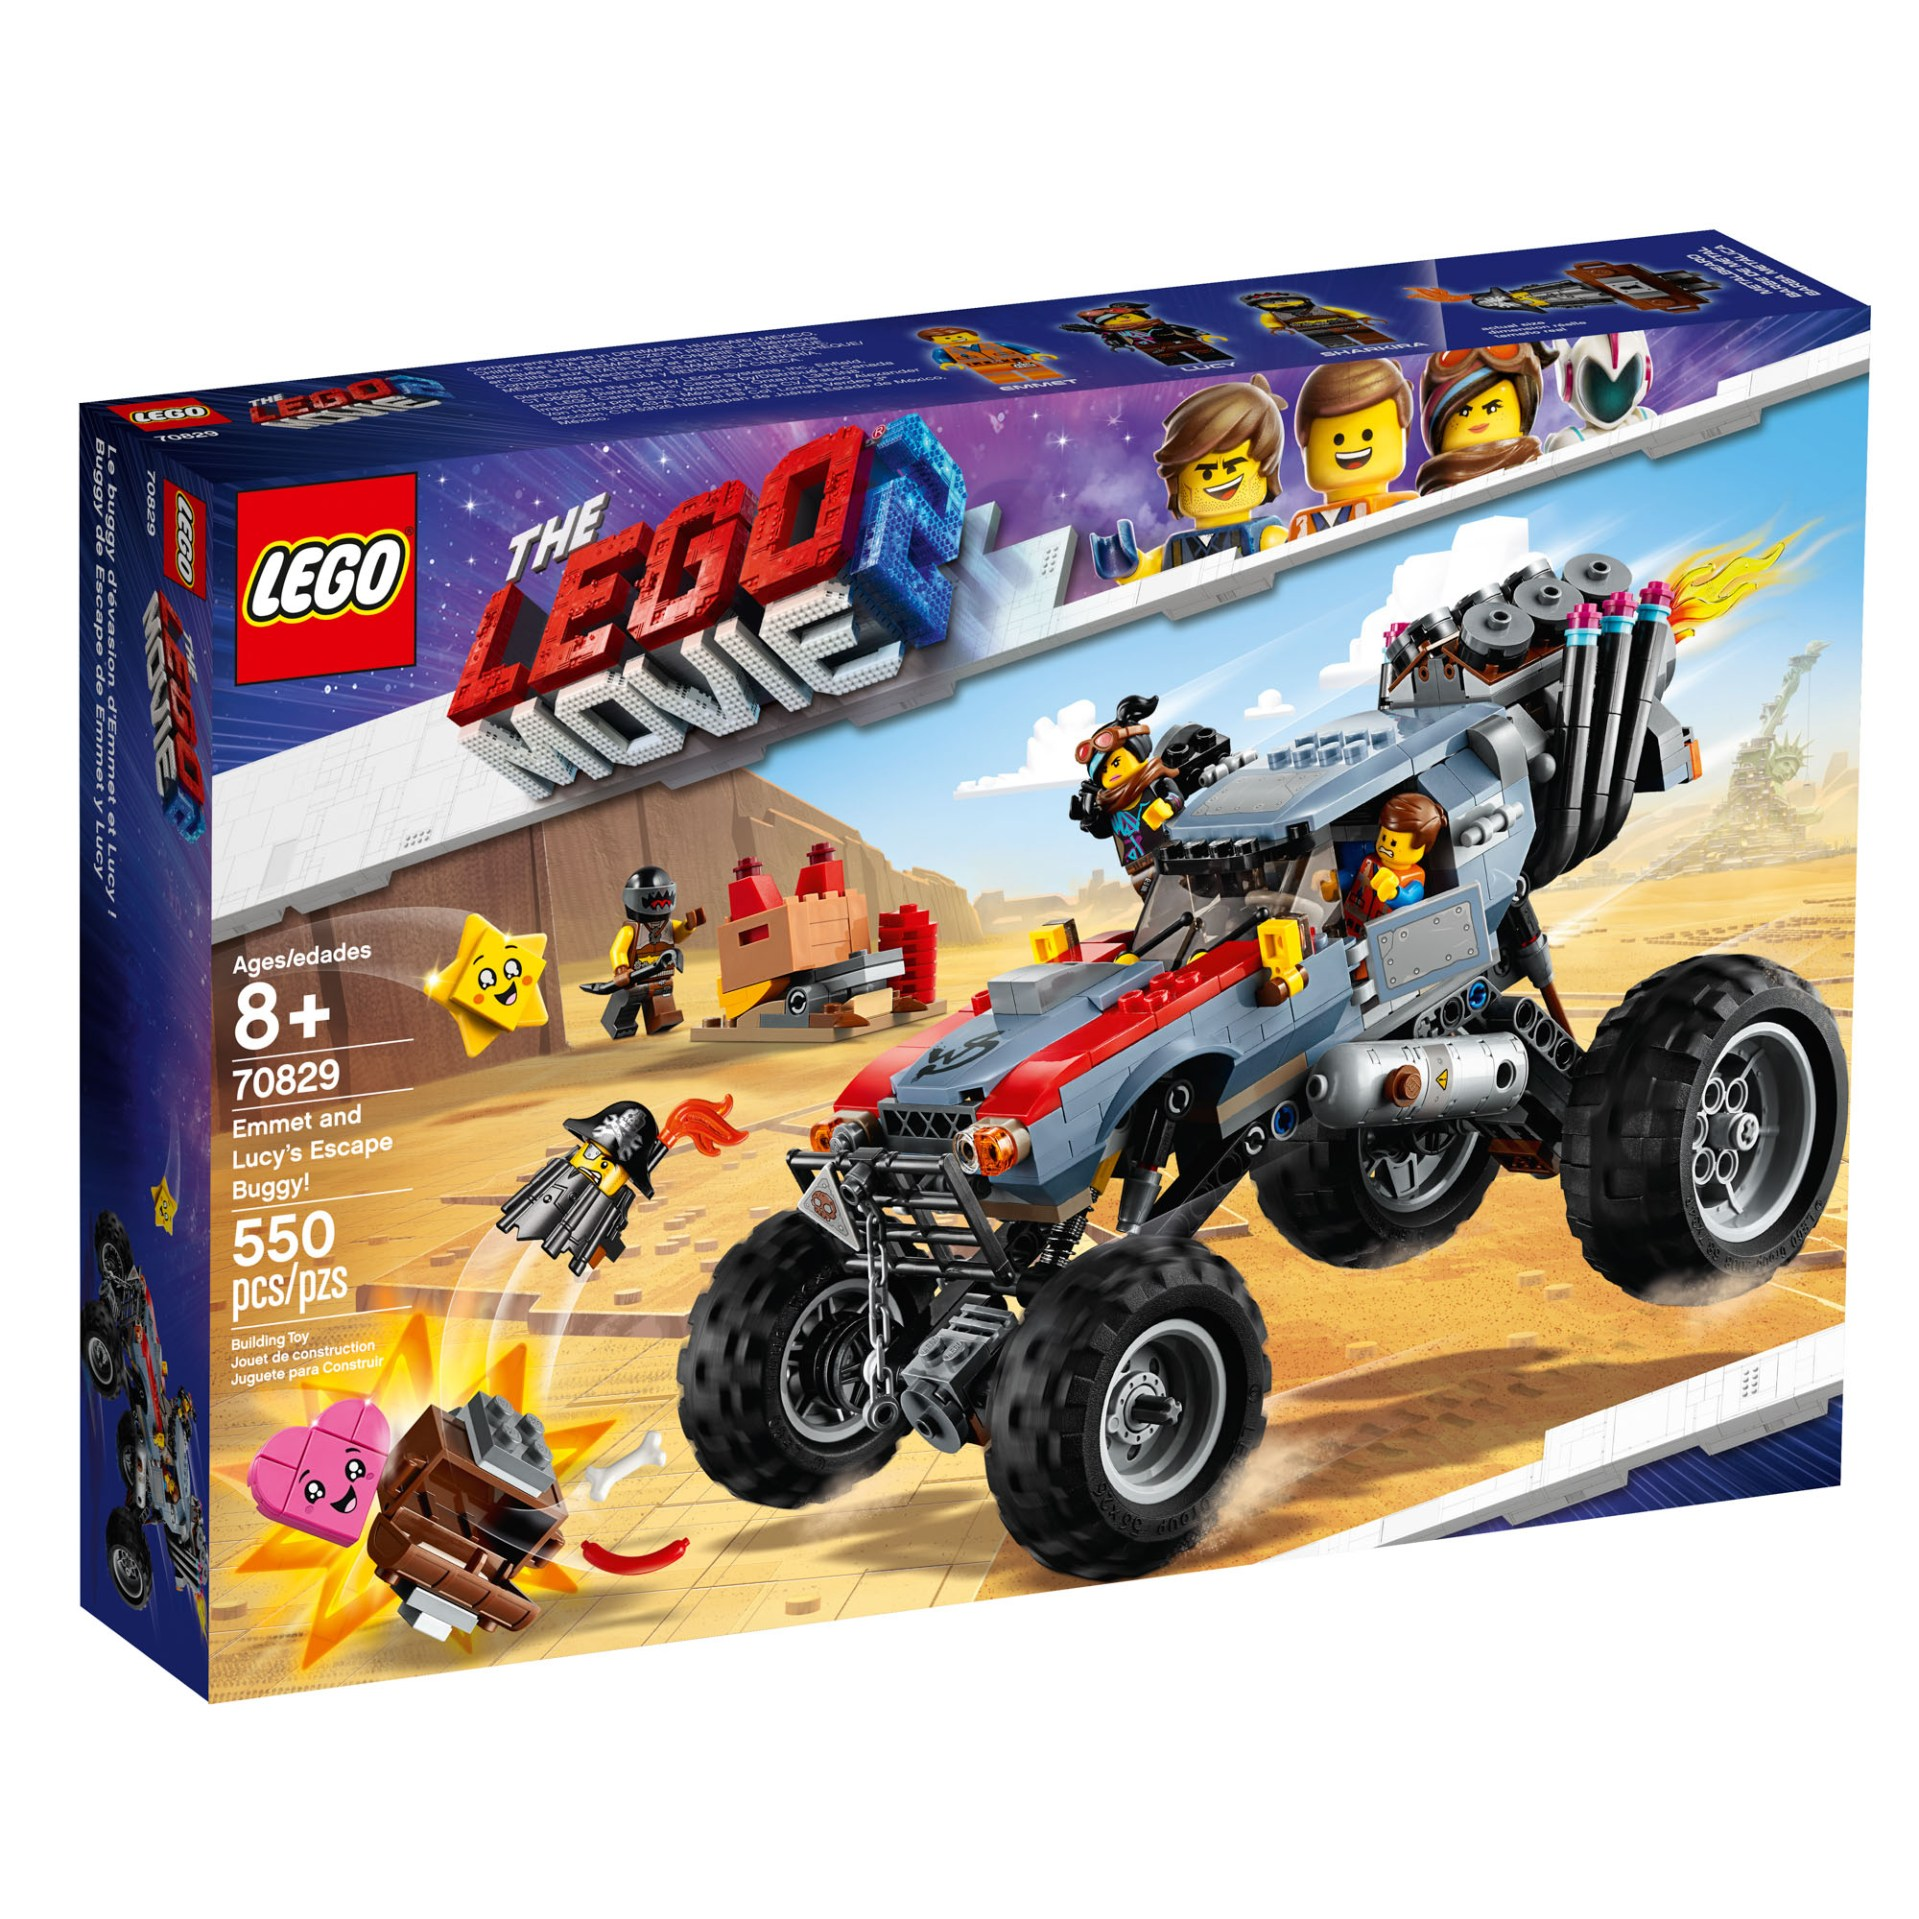 70829 — Emmet and Lucy's Escape Buggy